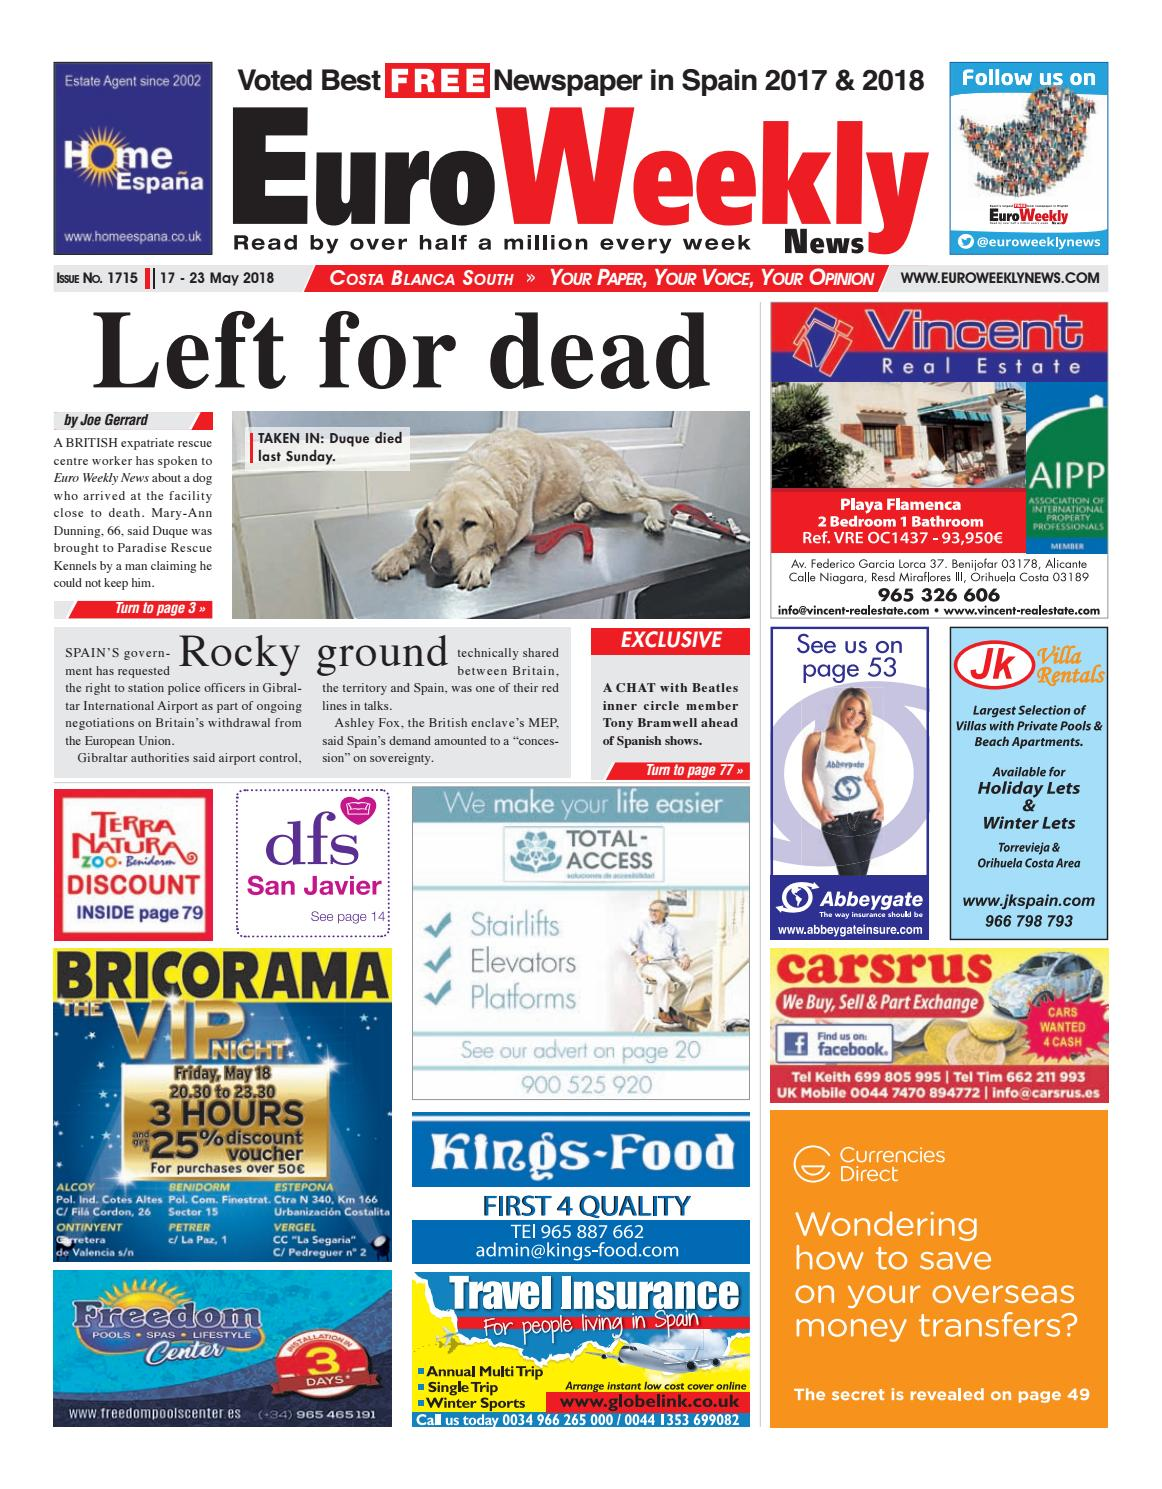 Euro weekly news costa blanca south 17 23 may 2018 issue 1715 by euro weekly news costa blanca south 17 23 may 2018 issue 1715 by euro weekly news media sa issuu fandeluxe Image collections